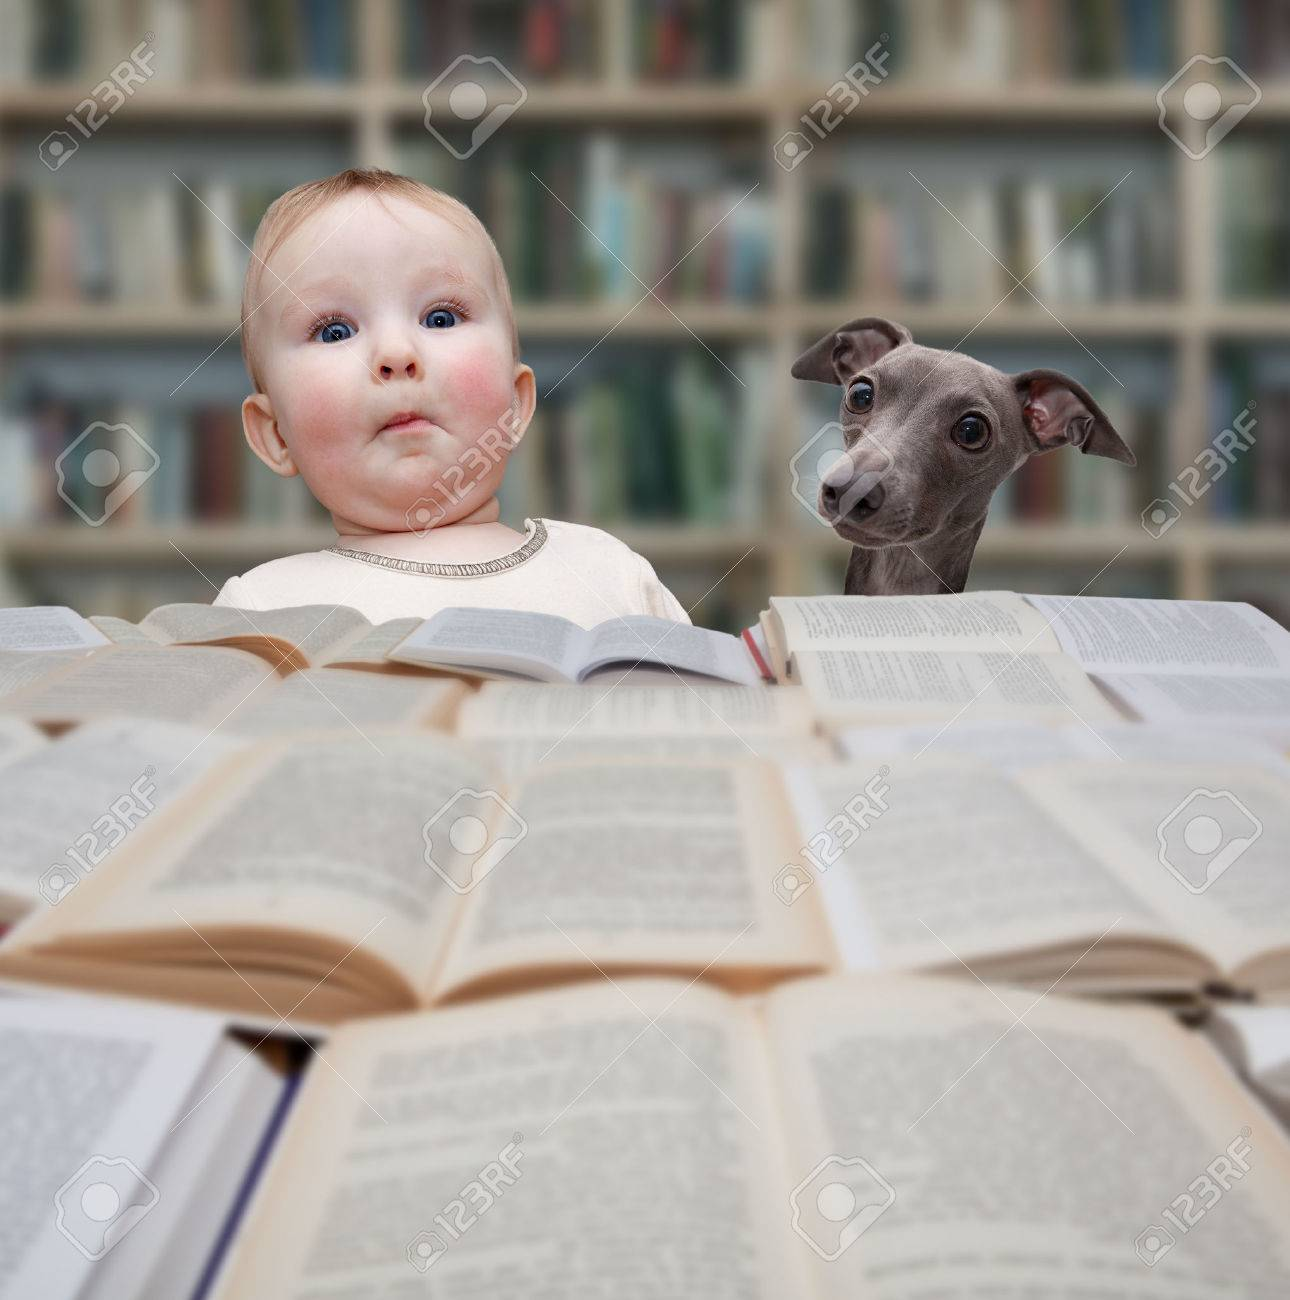 child reading a book in library Stock Photo - 49590943